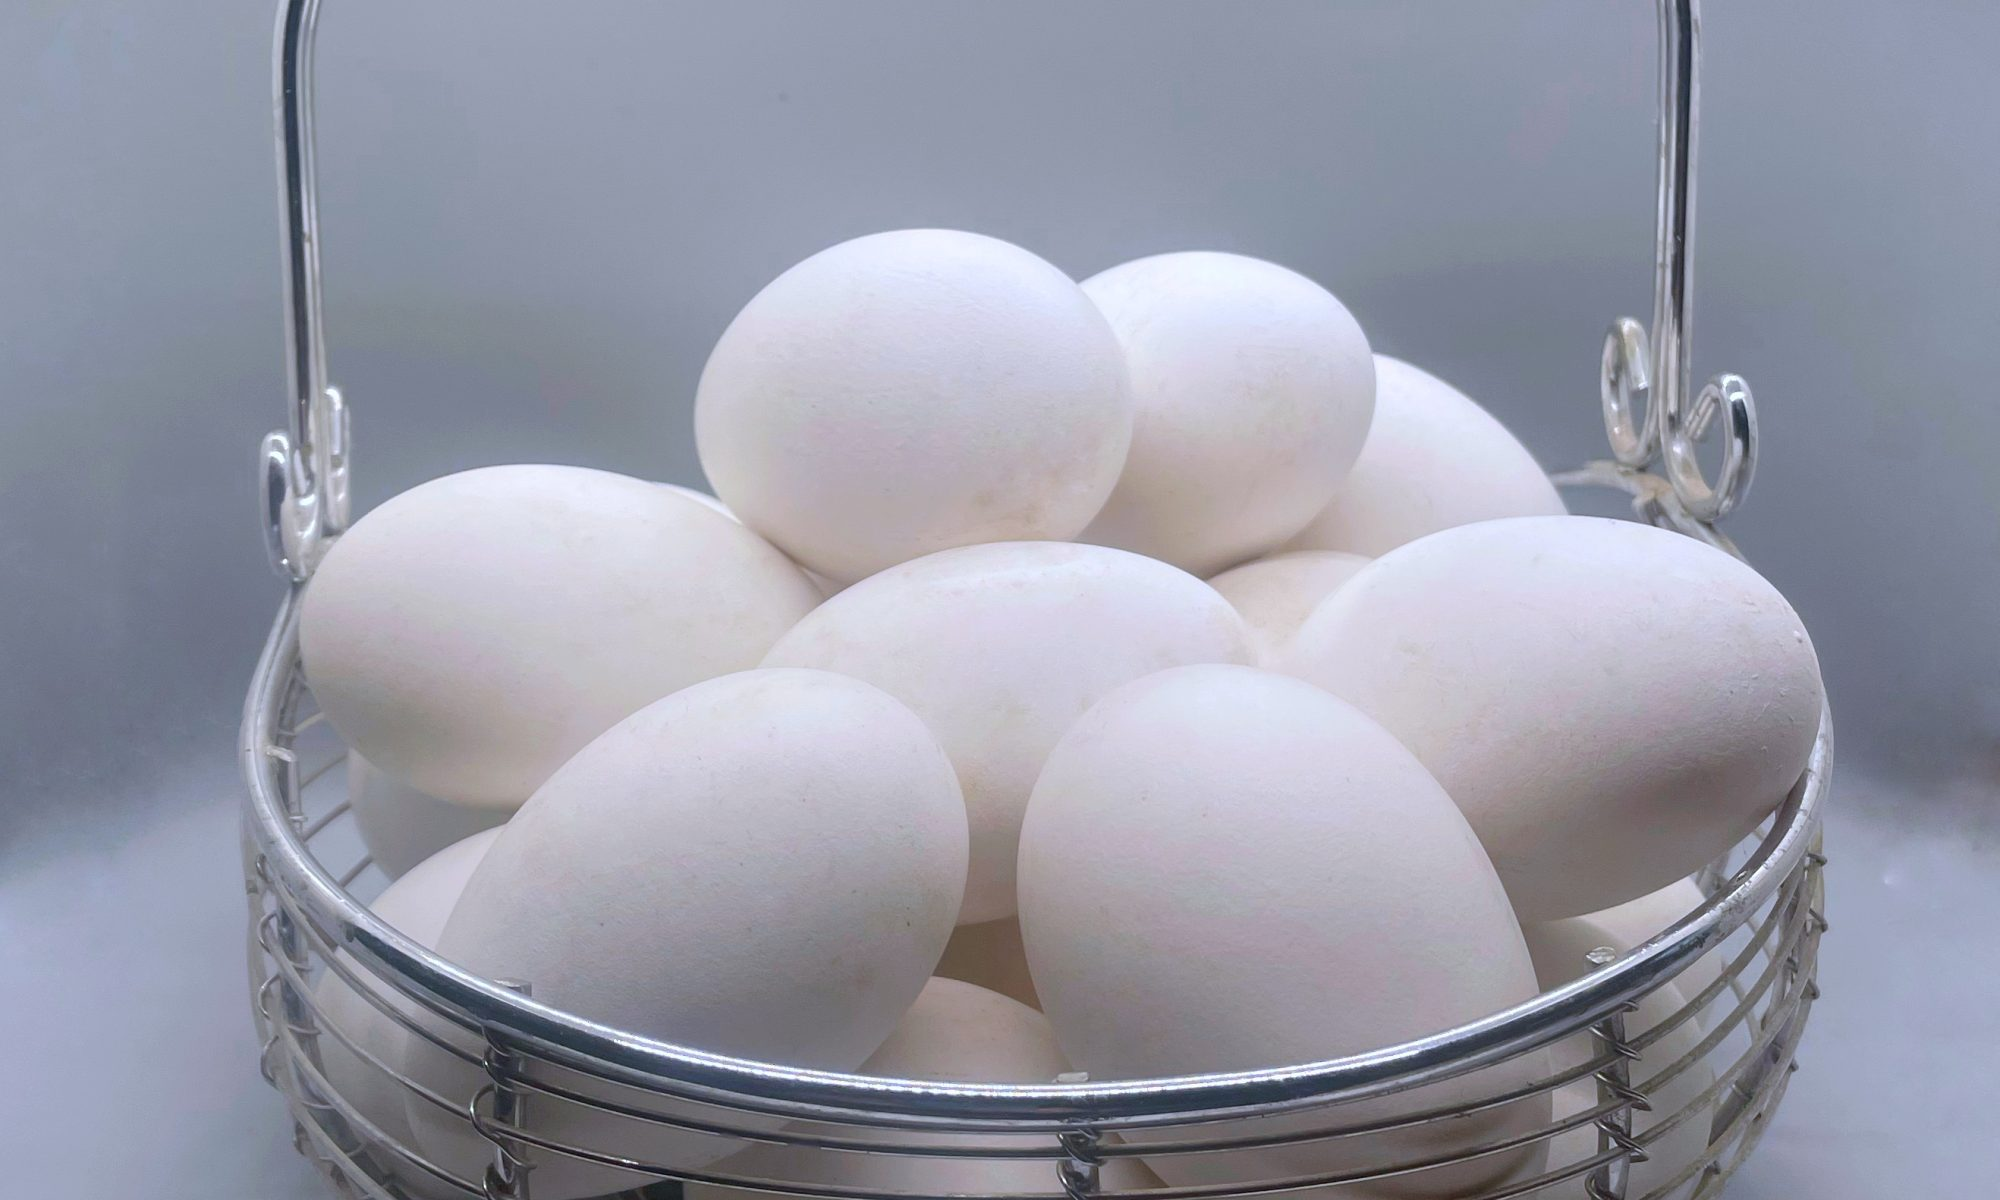 white goose eggs in a silver basket with a grey background